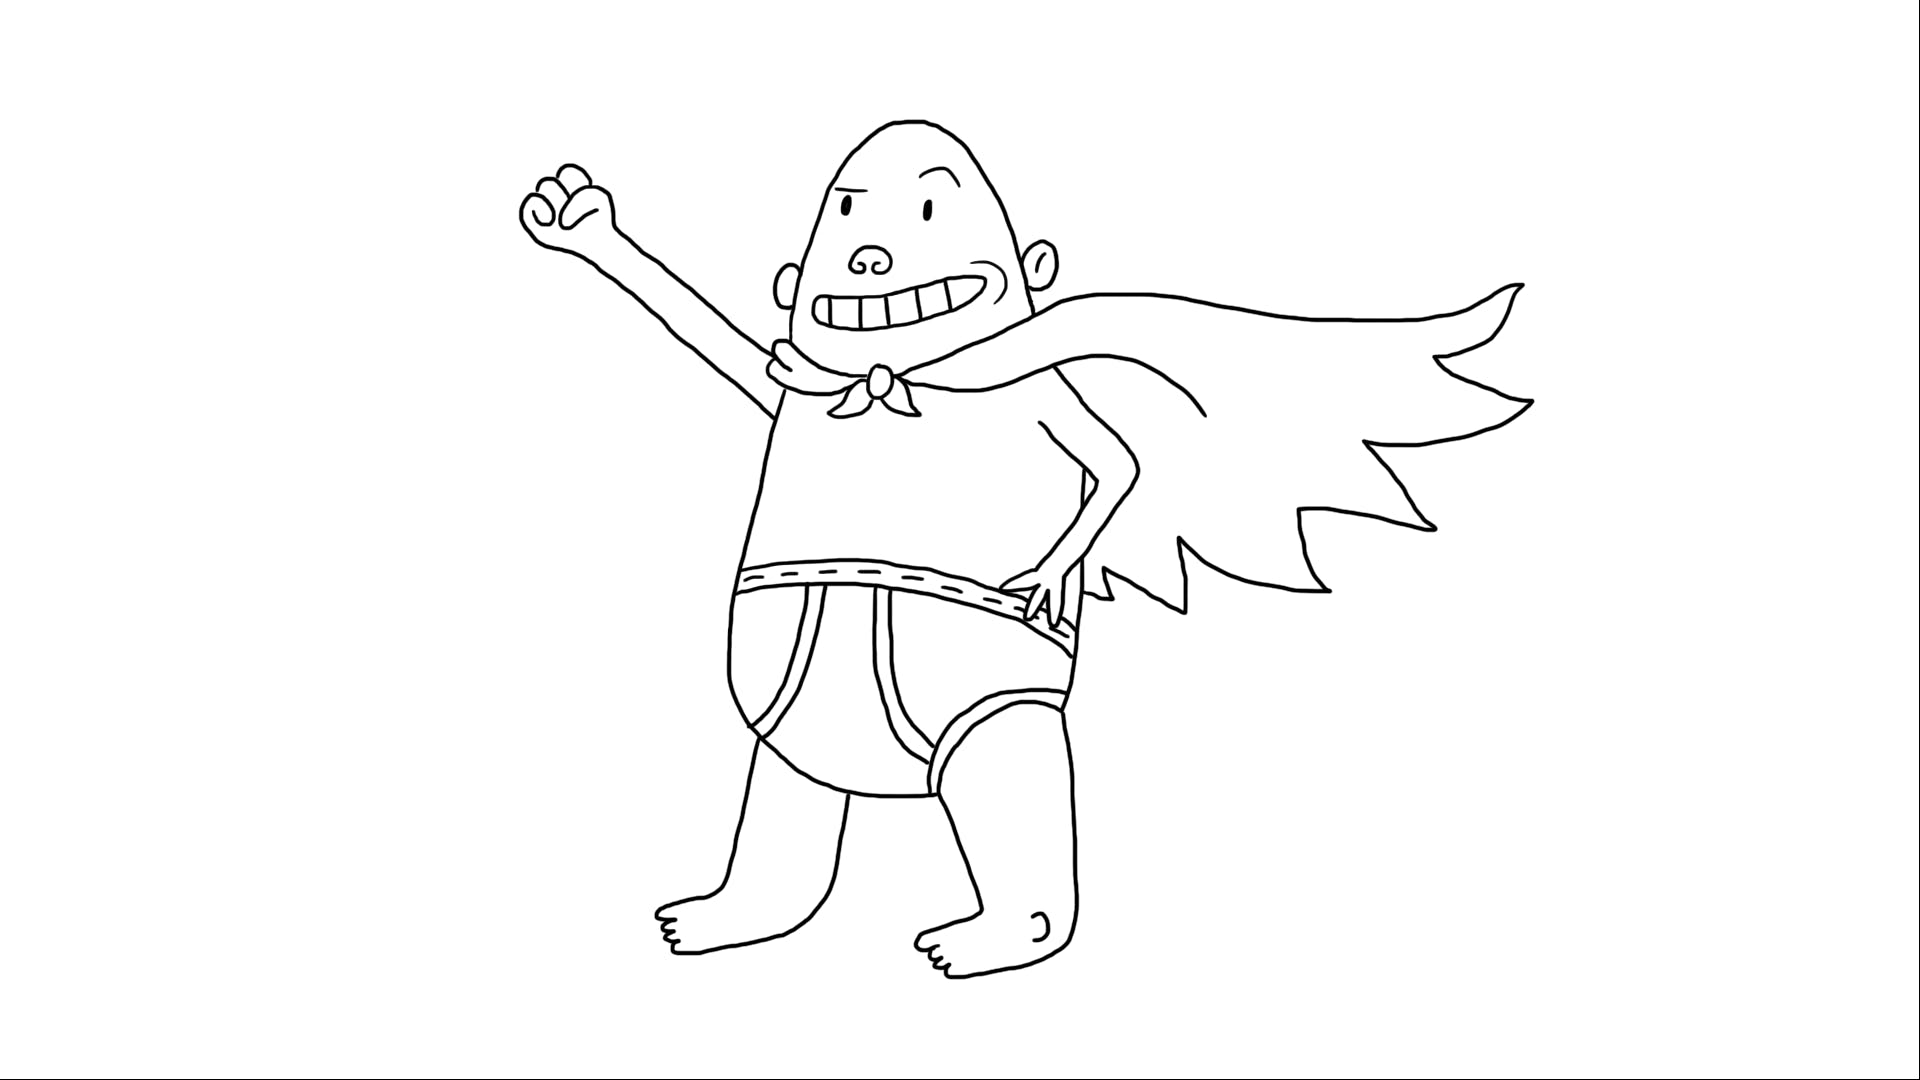 Captain Underpants almost finished